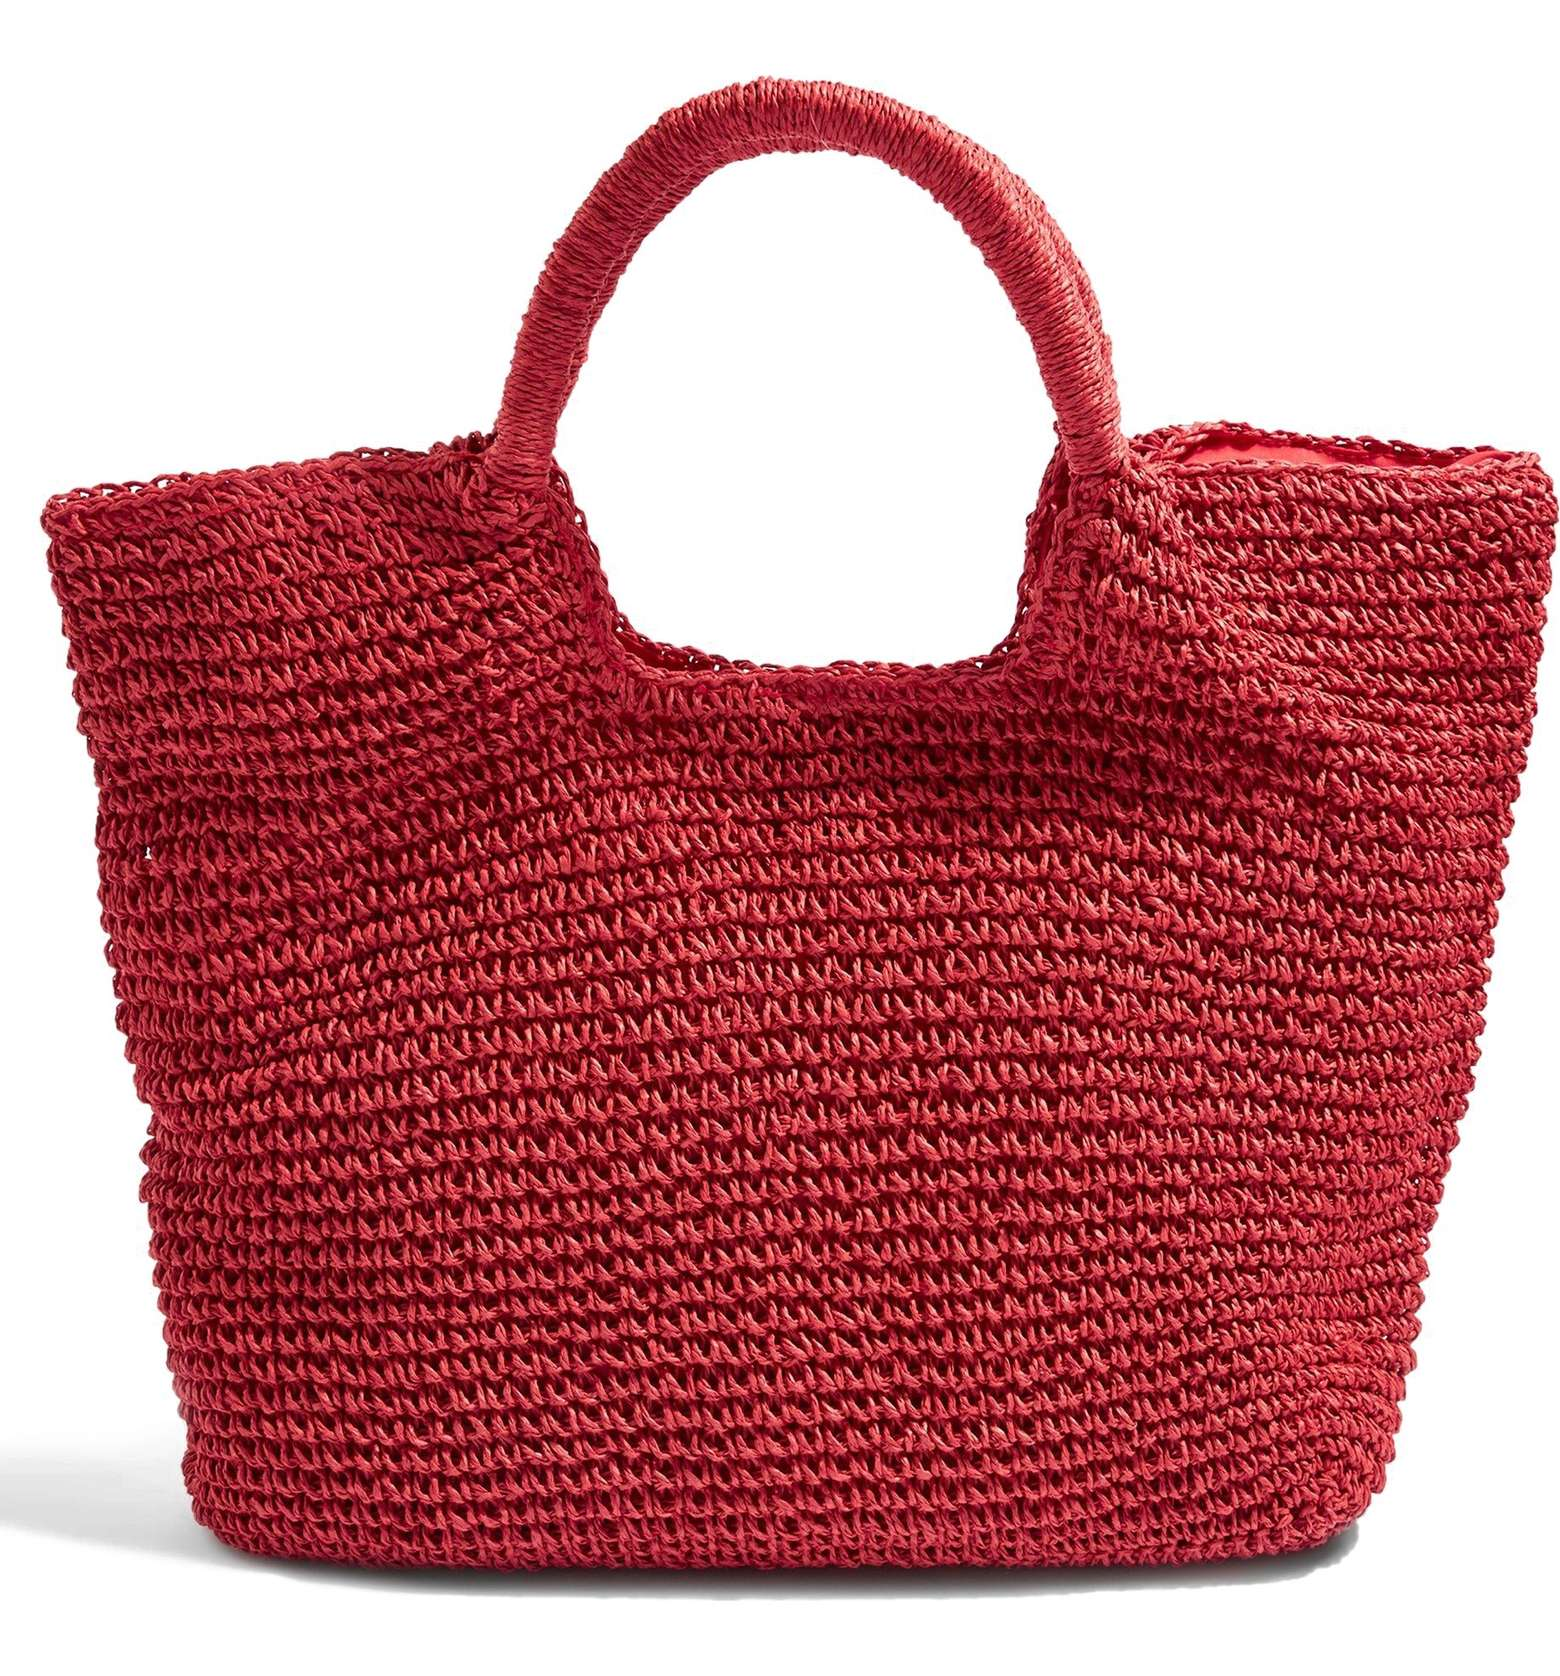 topshop straw bag.jpg